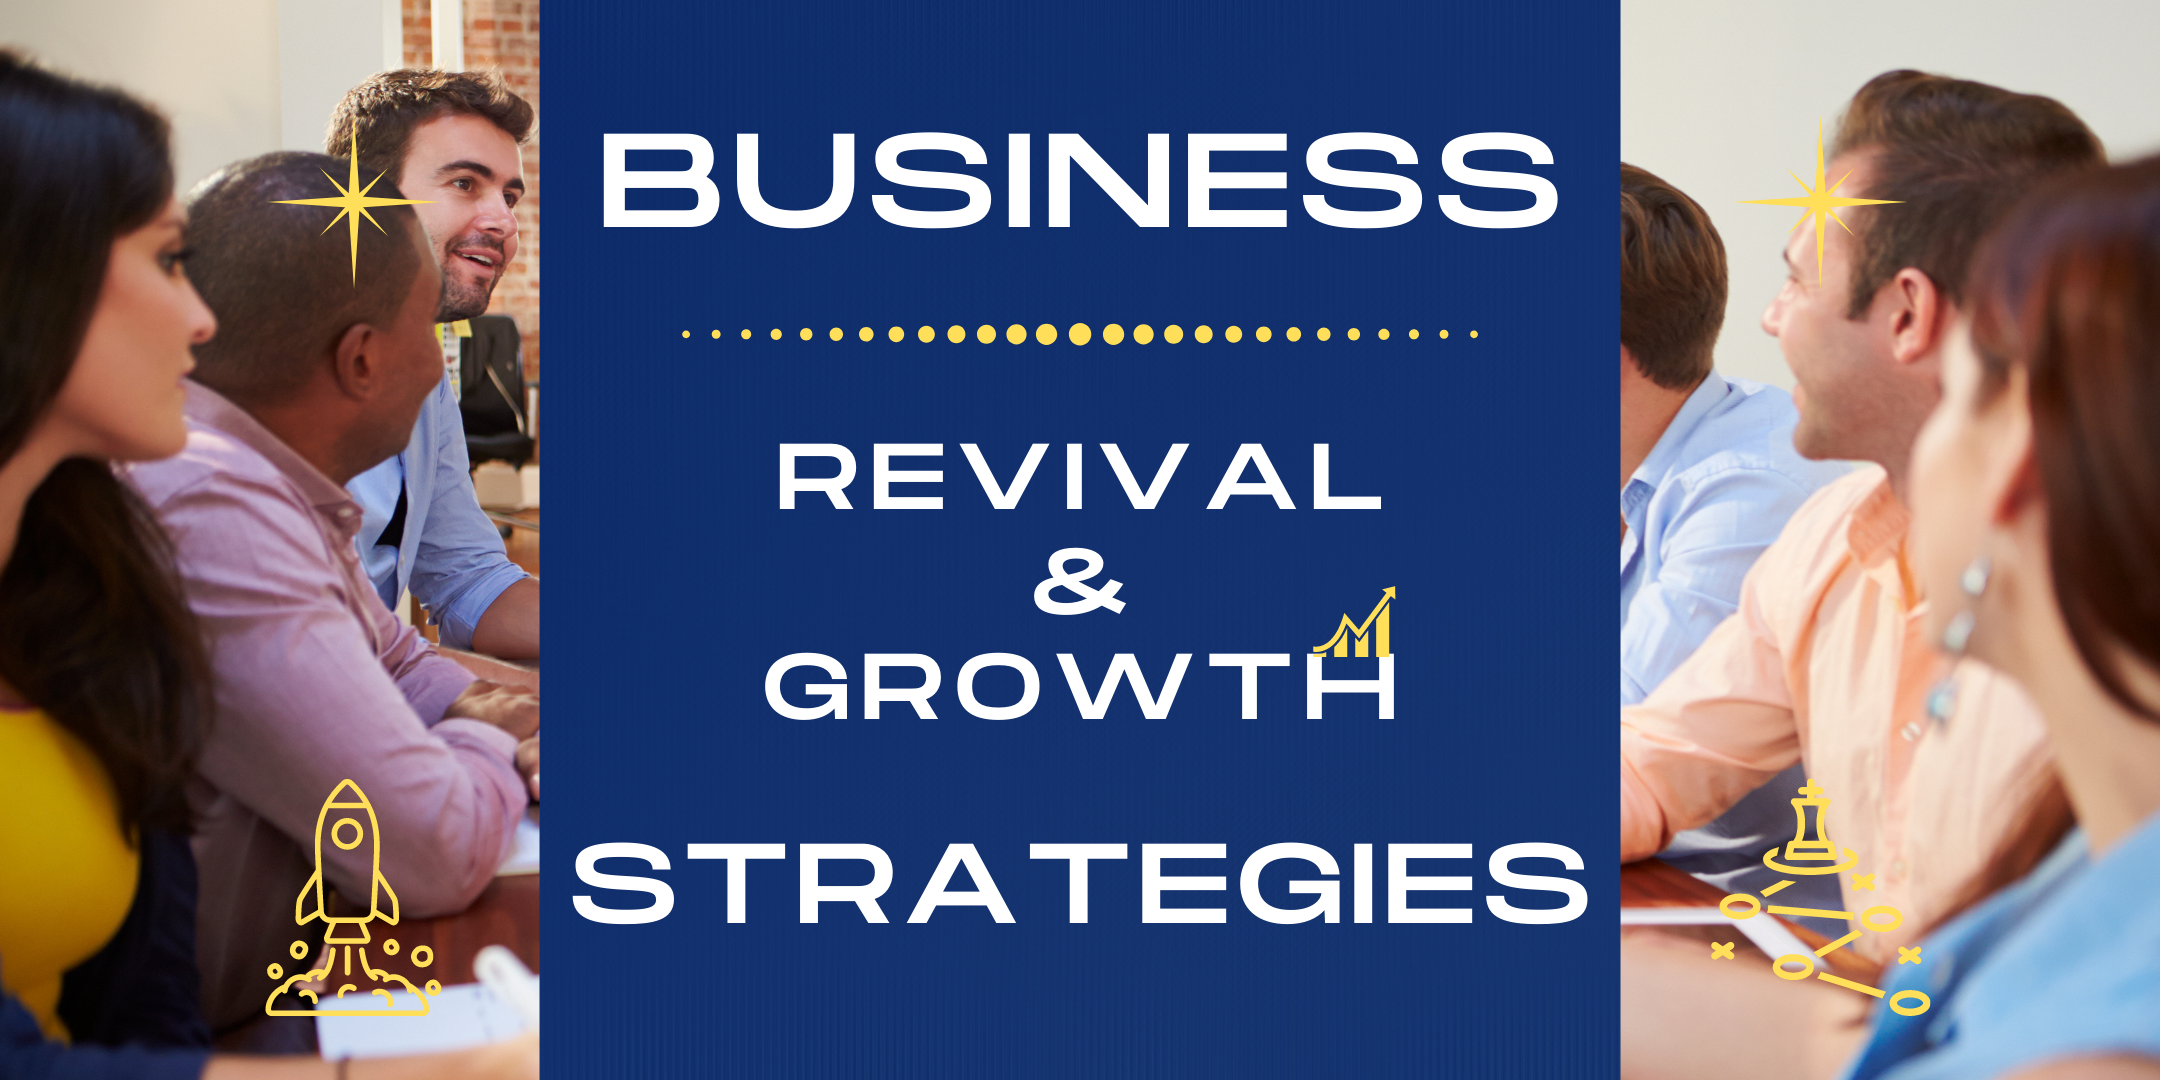 Business Revival & Growth Strategies